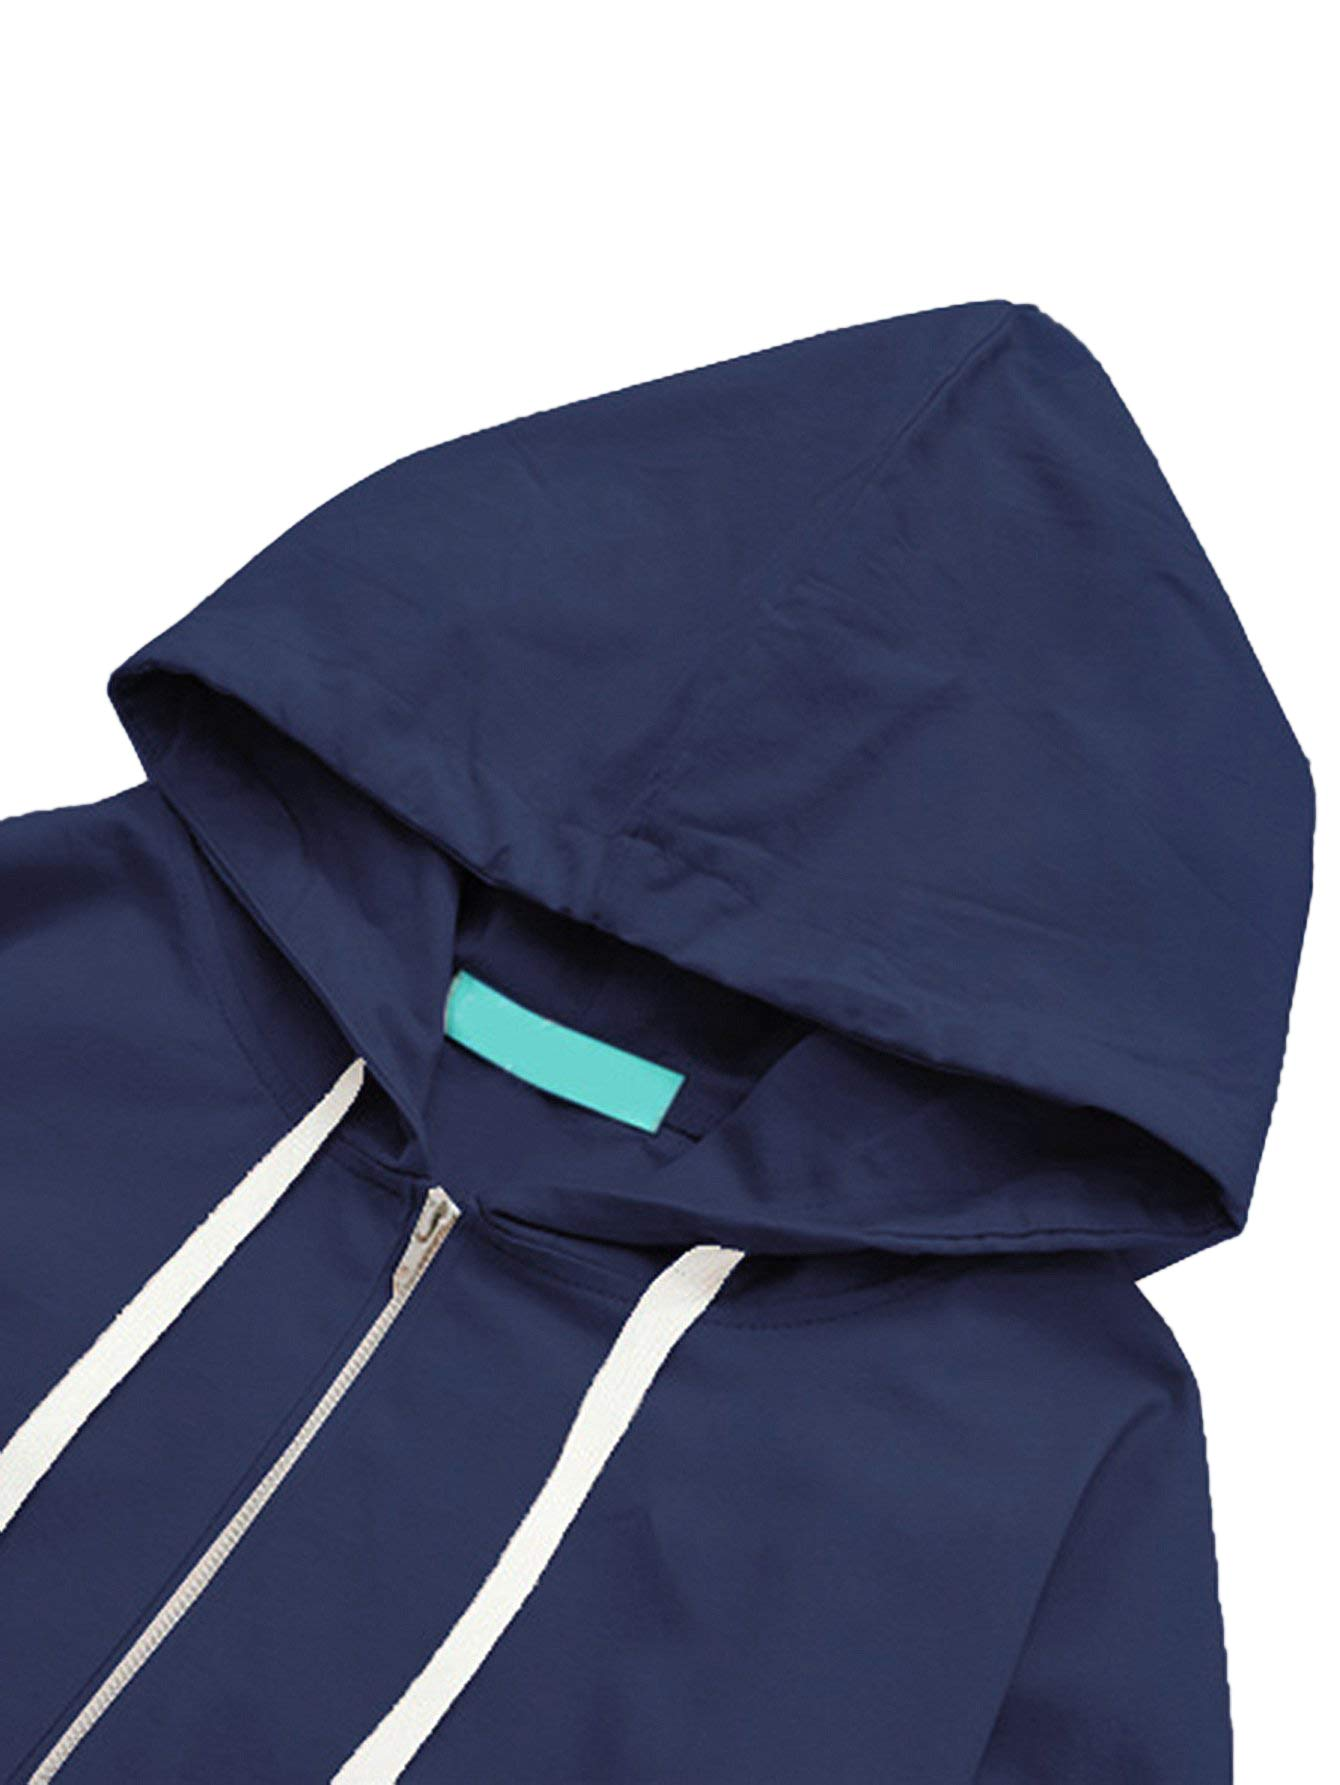 Romwe Women's Lightweight Kangaroo Pocket Anorak Sports Jacket Drawstring Hooded Zip up Windproof Windbreaker Navy S by Romwe (Image #3)